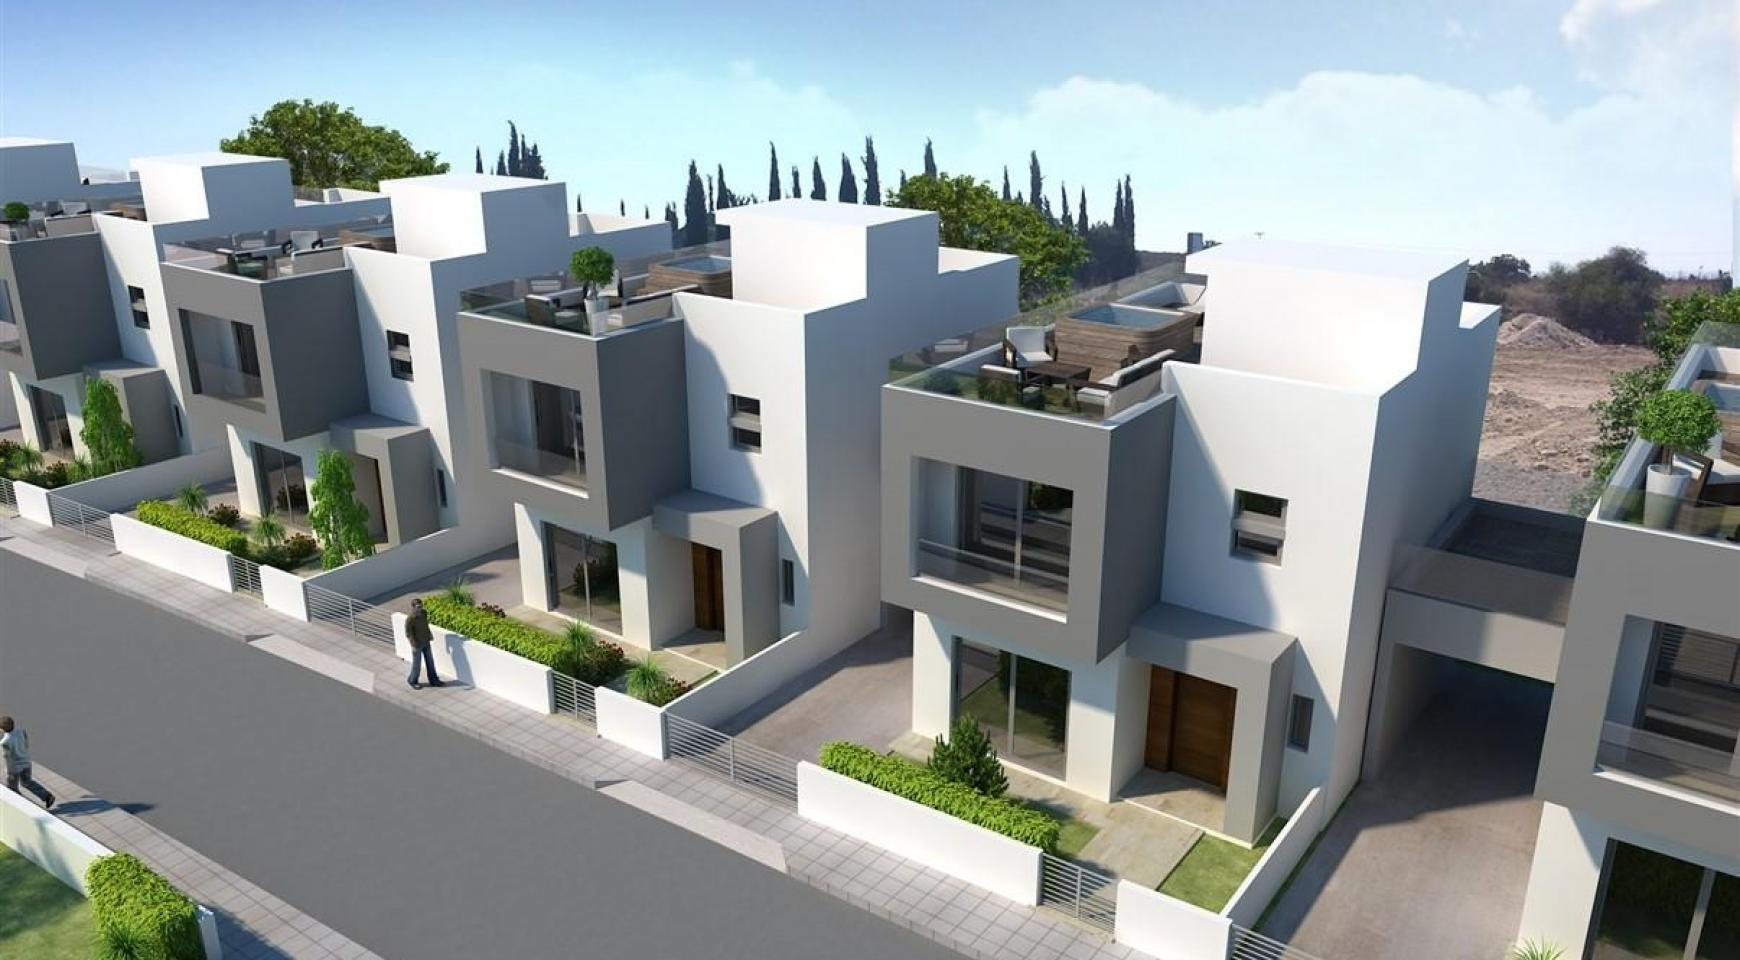 3 Bedroom Villa in a New Project - 2